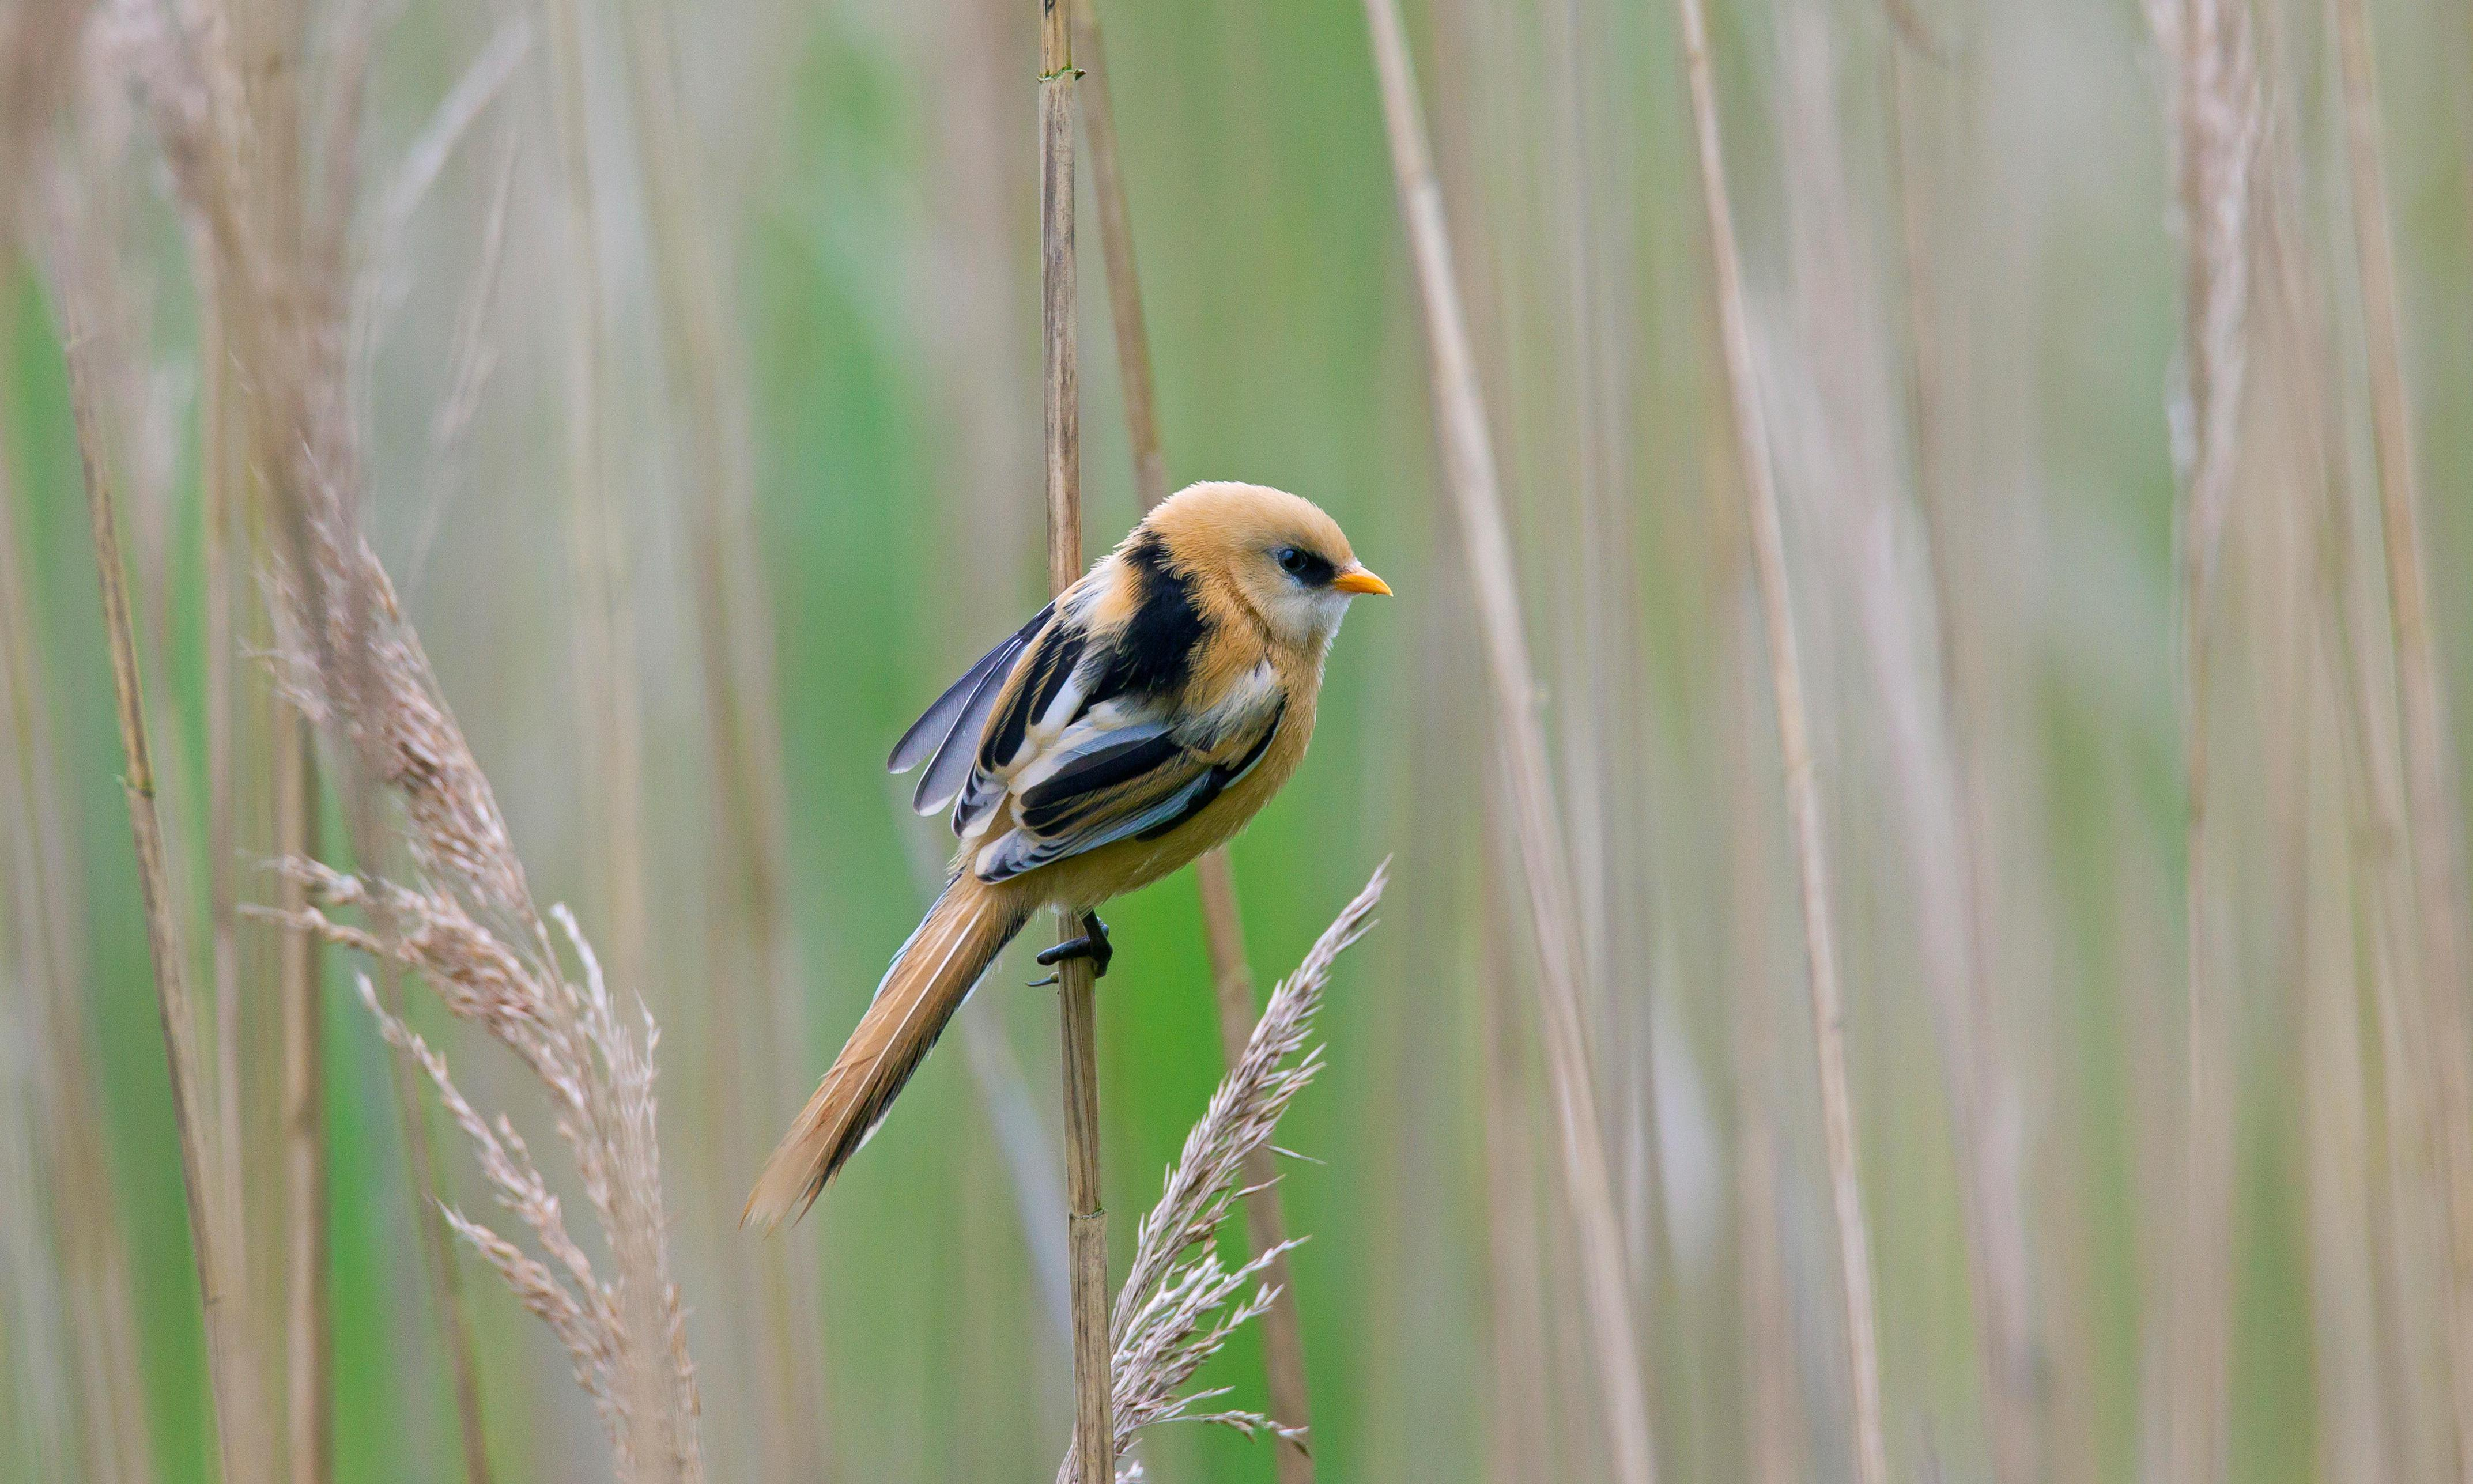 'Land sparing' on farms could revitalise UK bird populations, study says